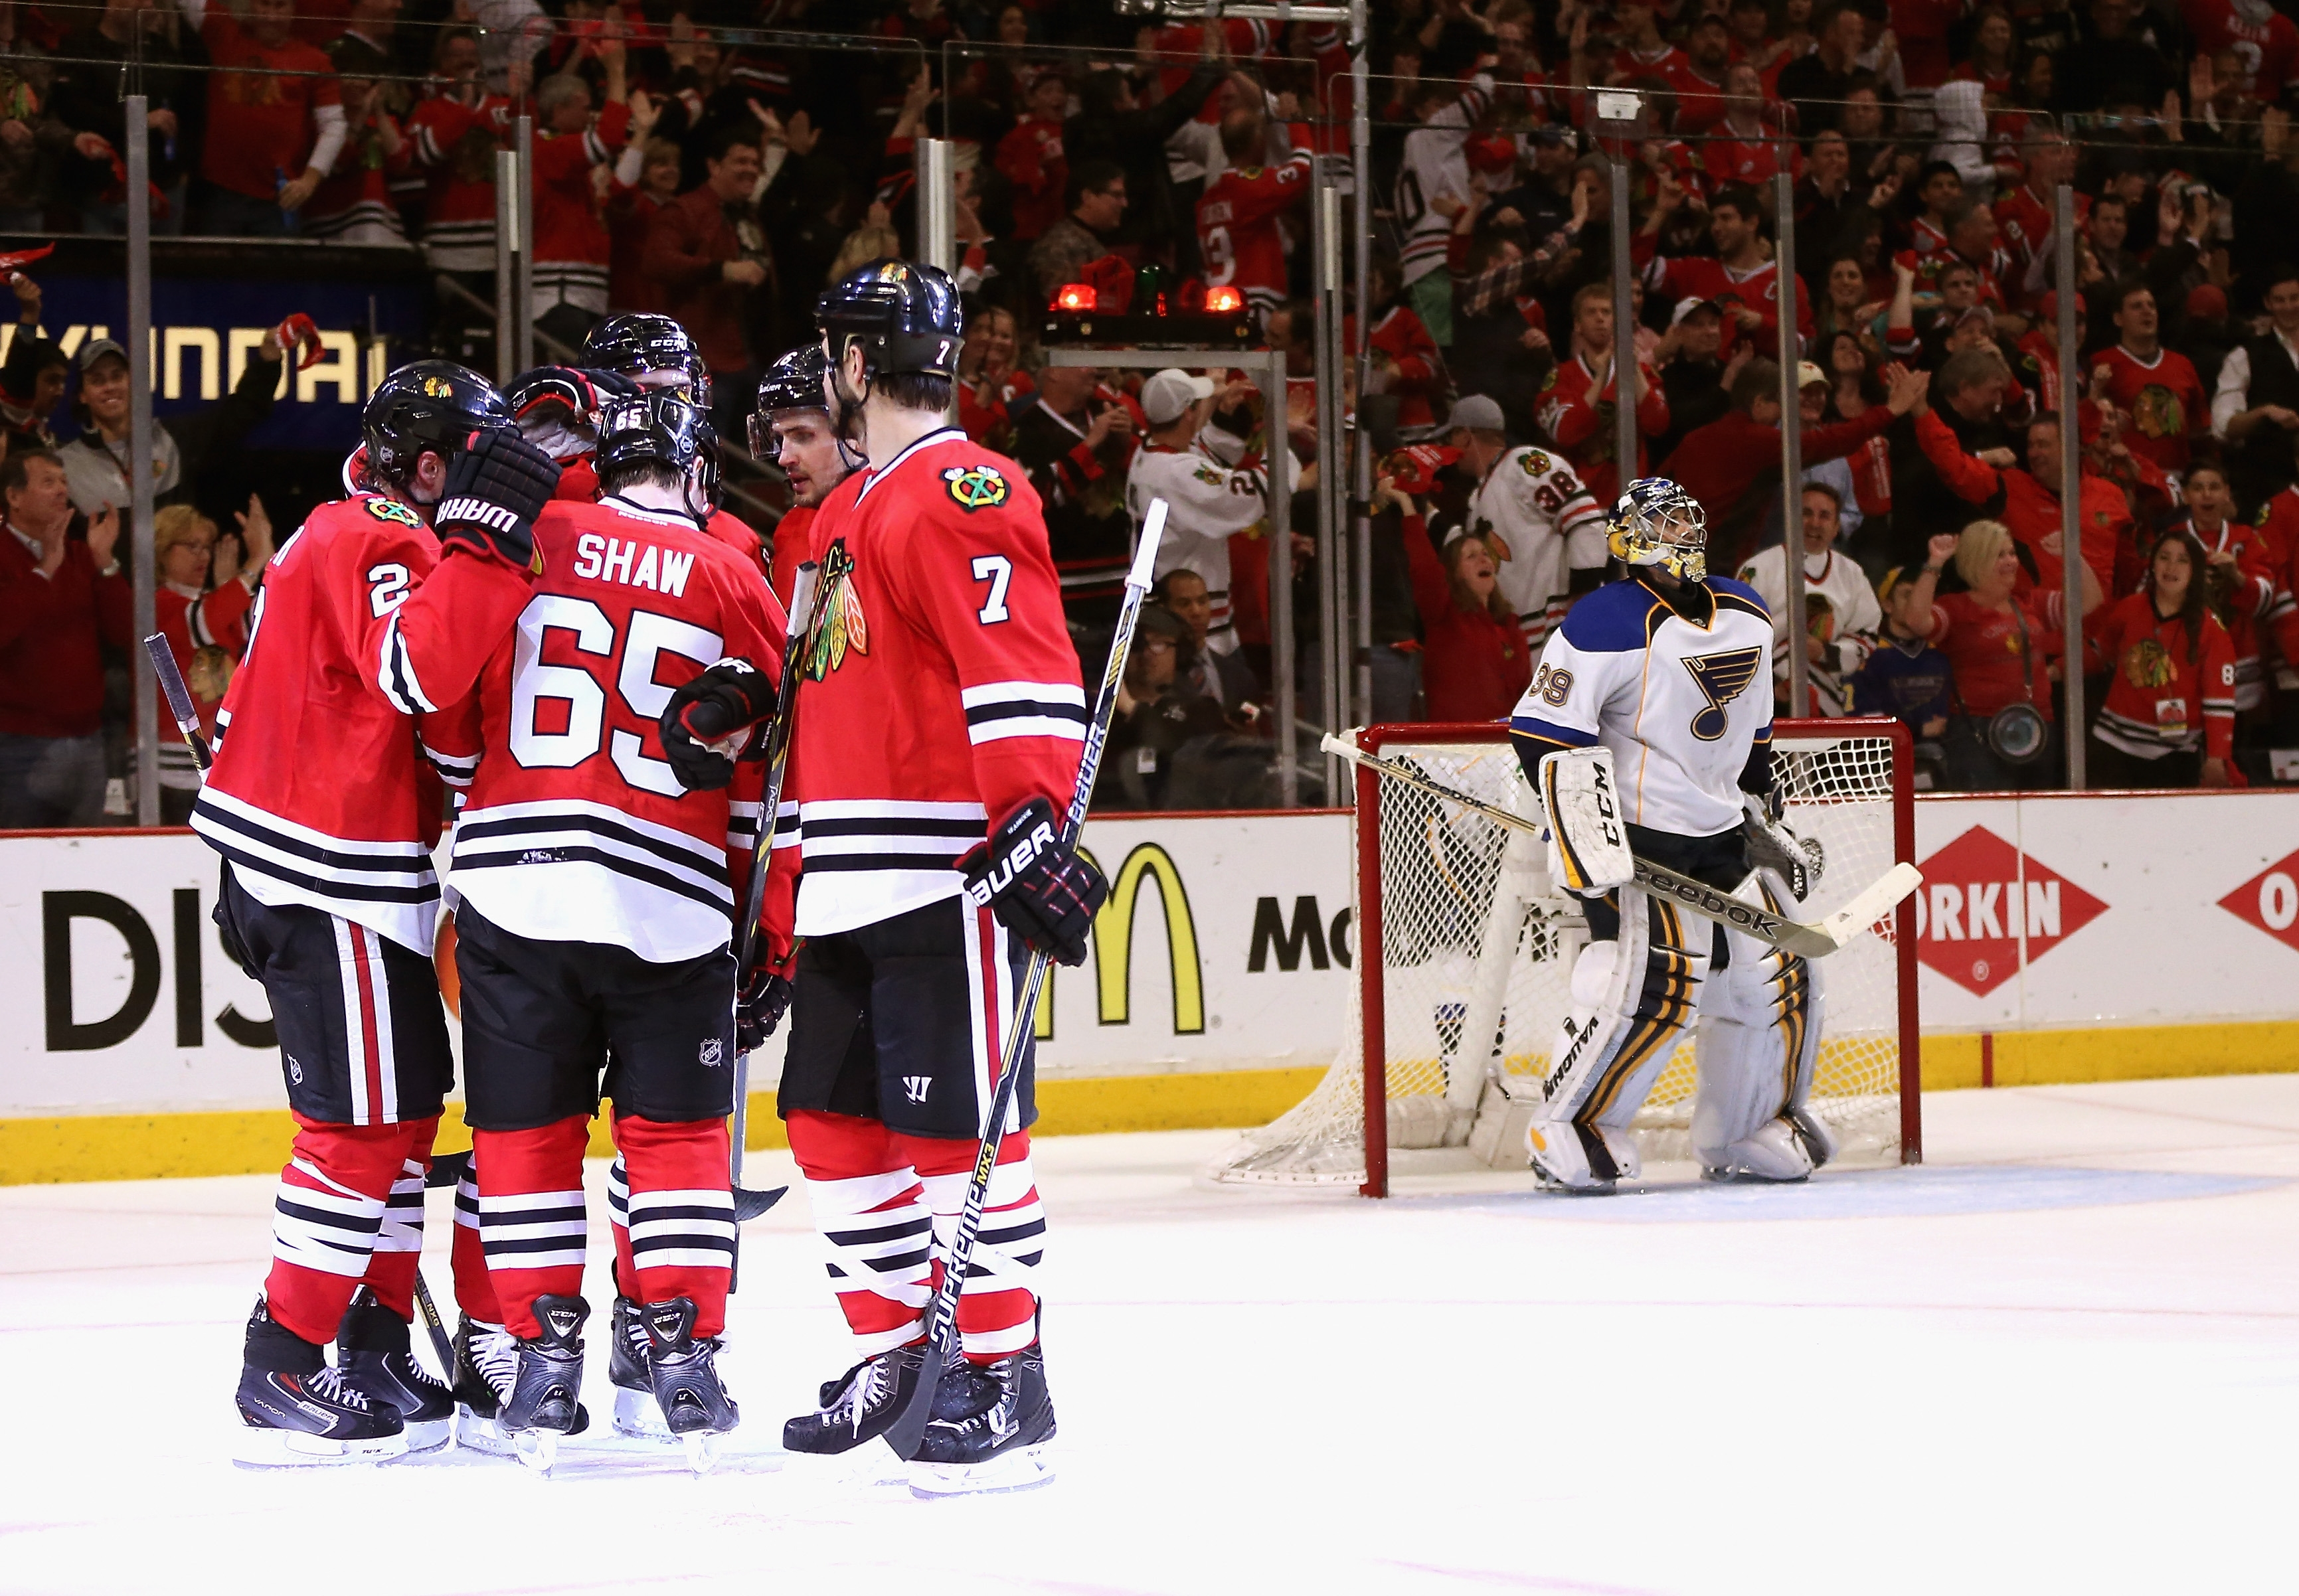 Members of the Blackhawks celebrate Duncan Keith's third-period goal against Ryan Miller and the Blues.